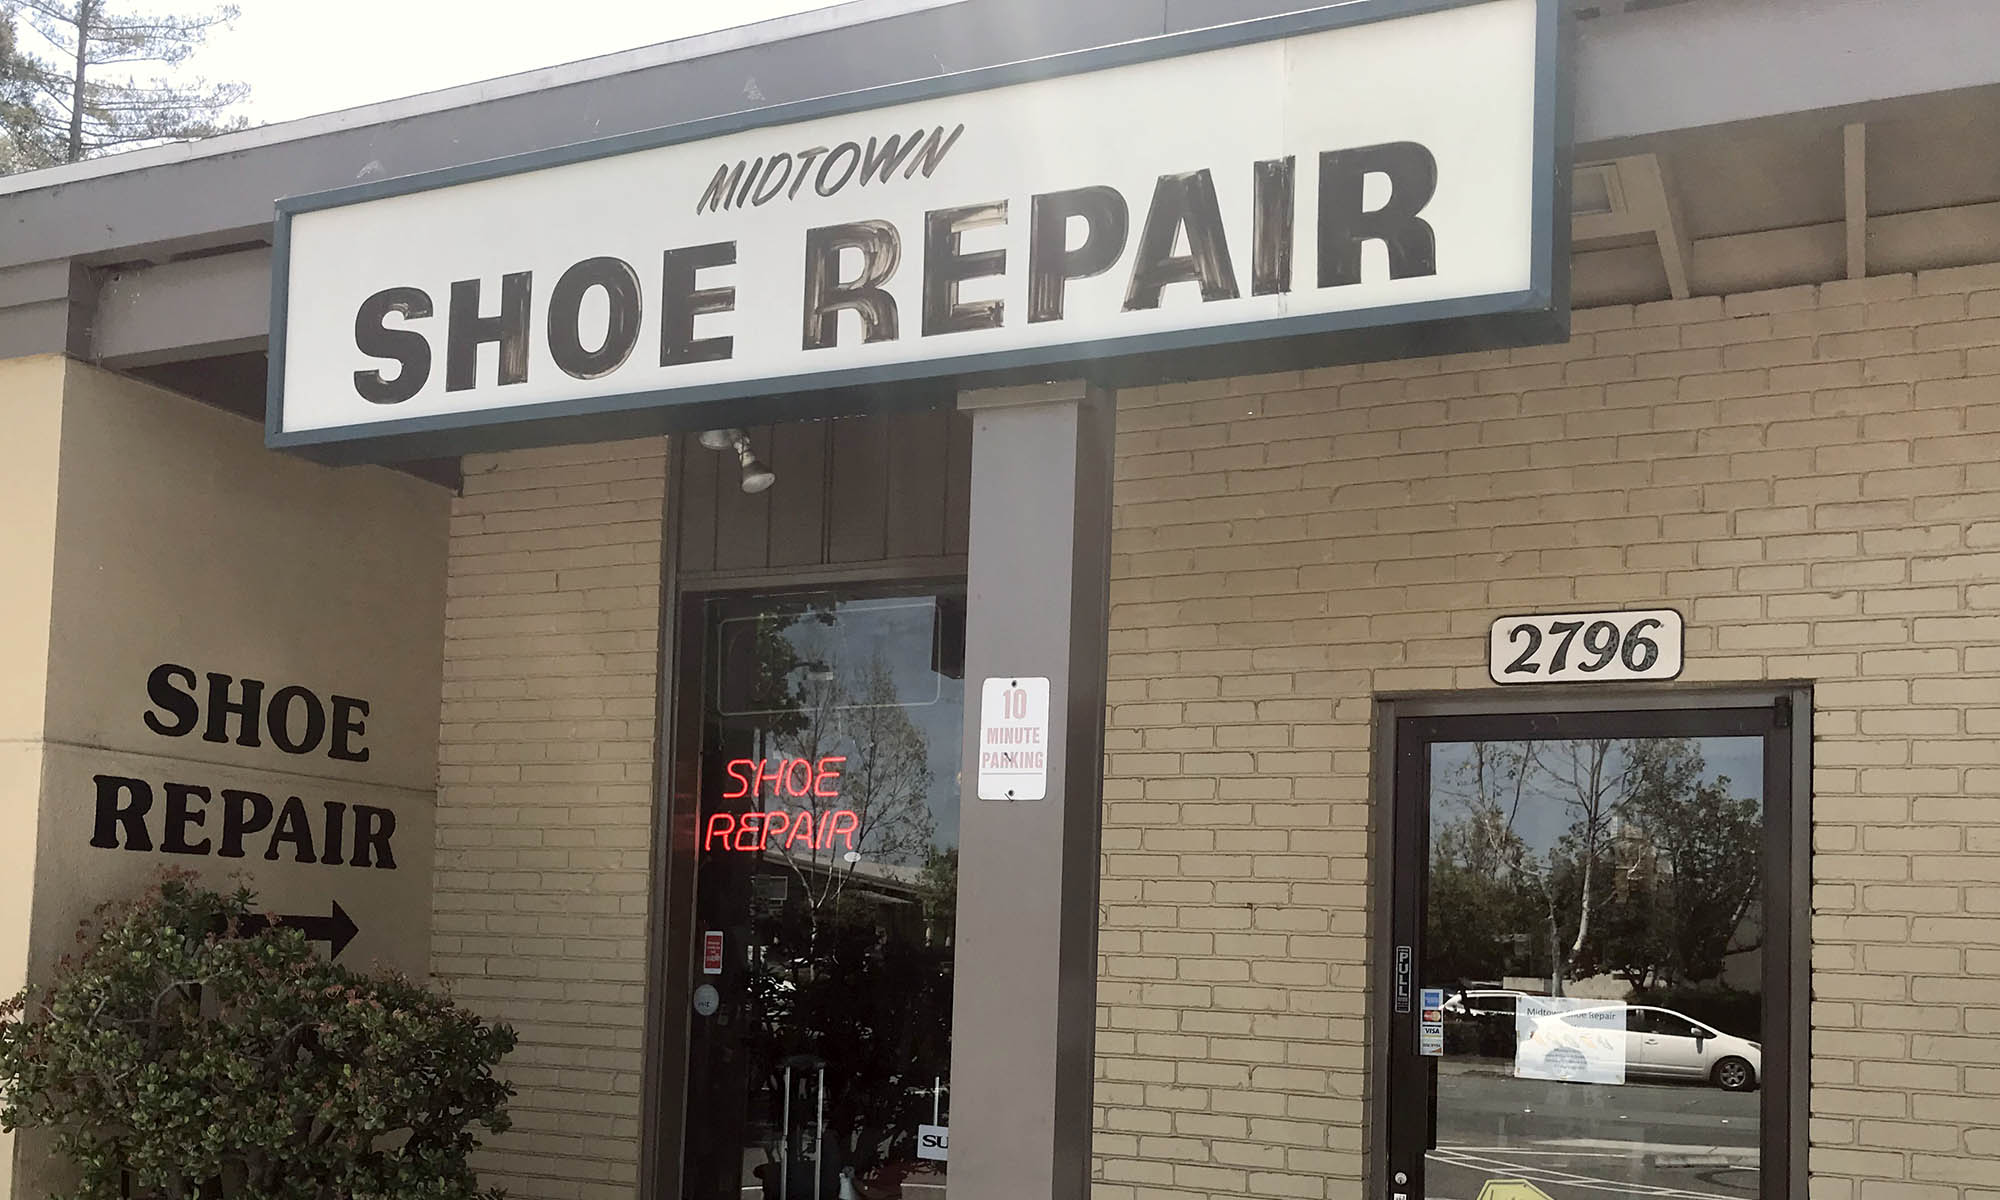 Midtown Shoe Repair Palo Alto